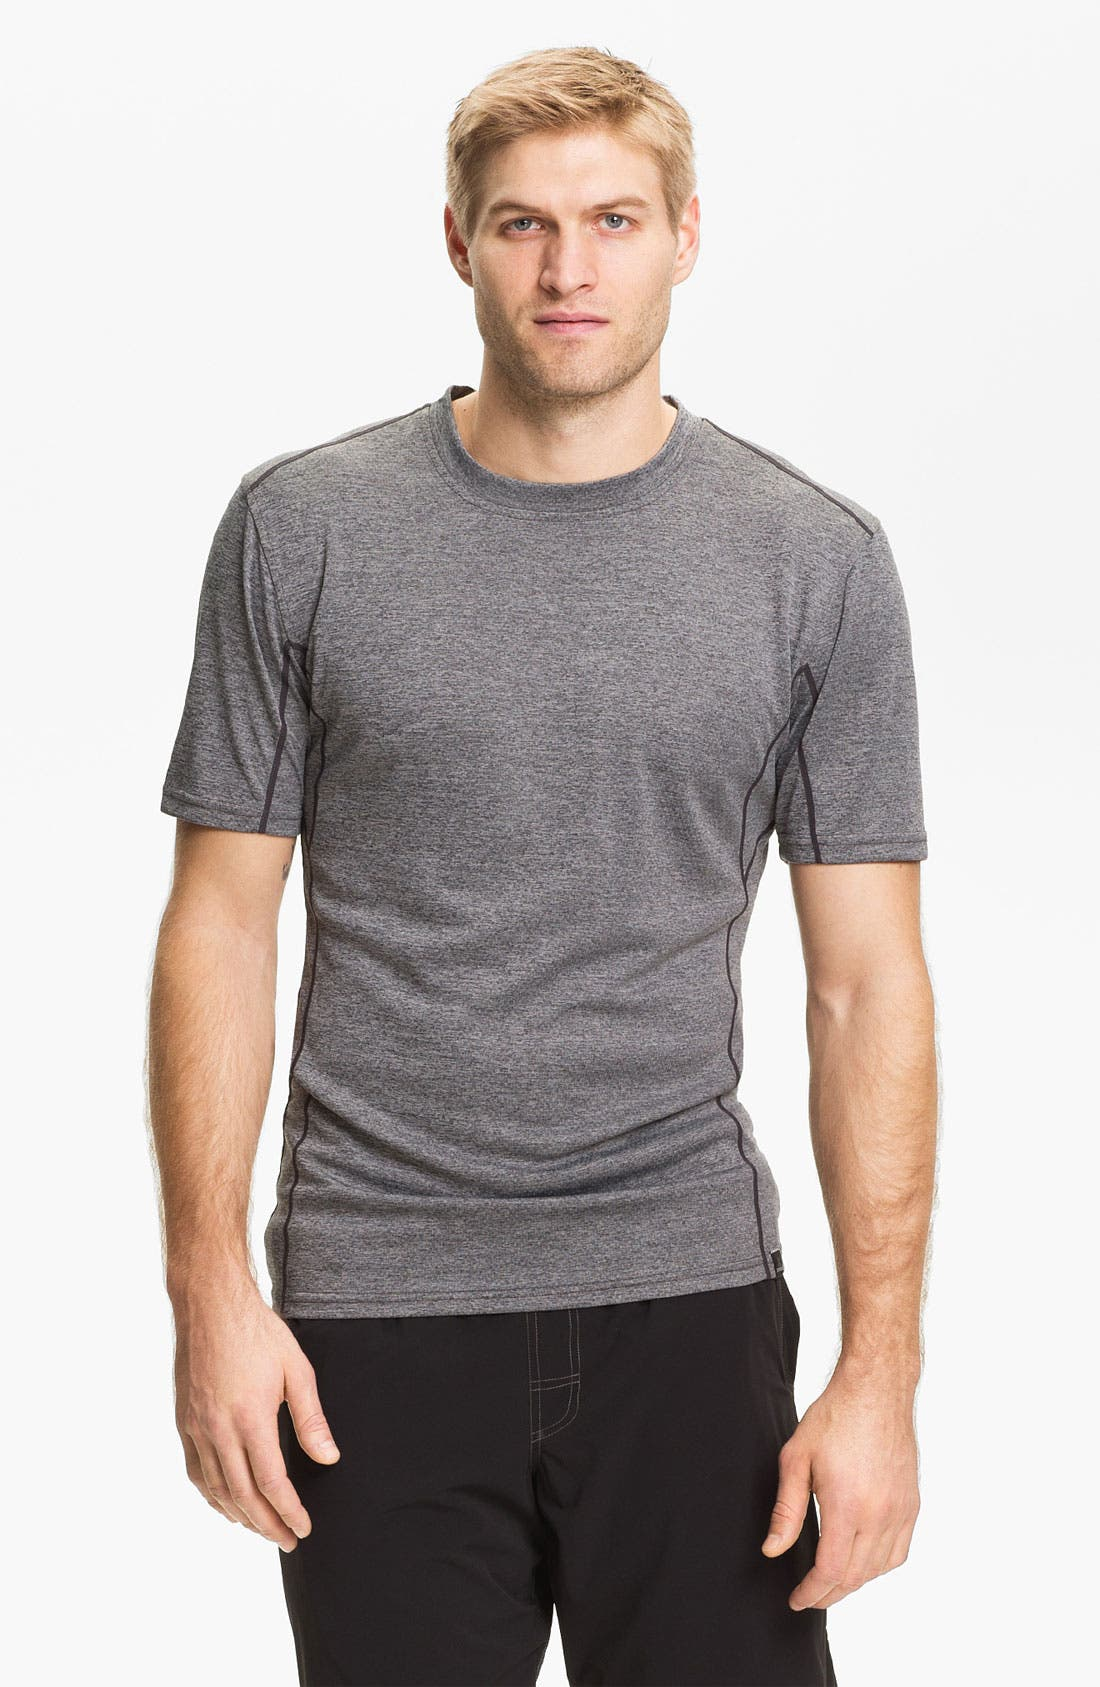 Alternate Image 1 Selected - prAna T-Shirt & Shorts